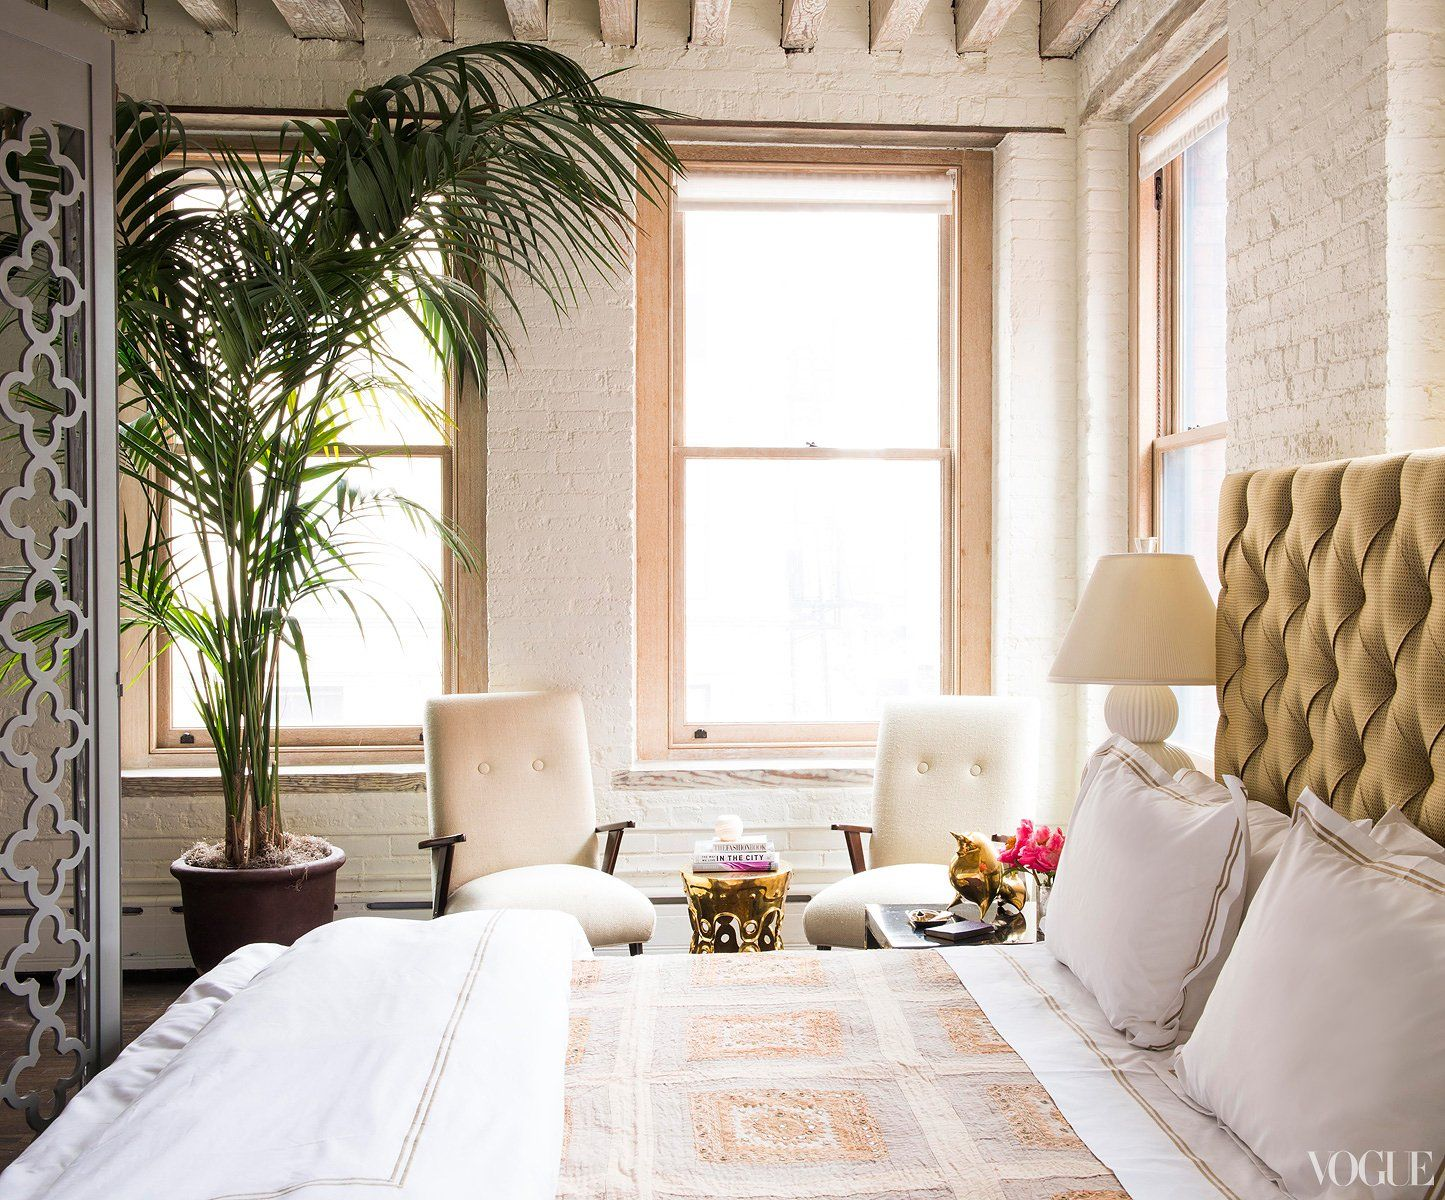 Rest Easy - Two Italian Boomerang chairs from the sixties are paired in front of the window to create a cozy seating area where I can read or enjoy the view. My bed is custom-made in upholstered silk, topped with an Indian throw.